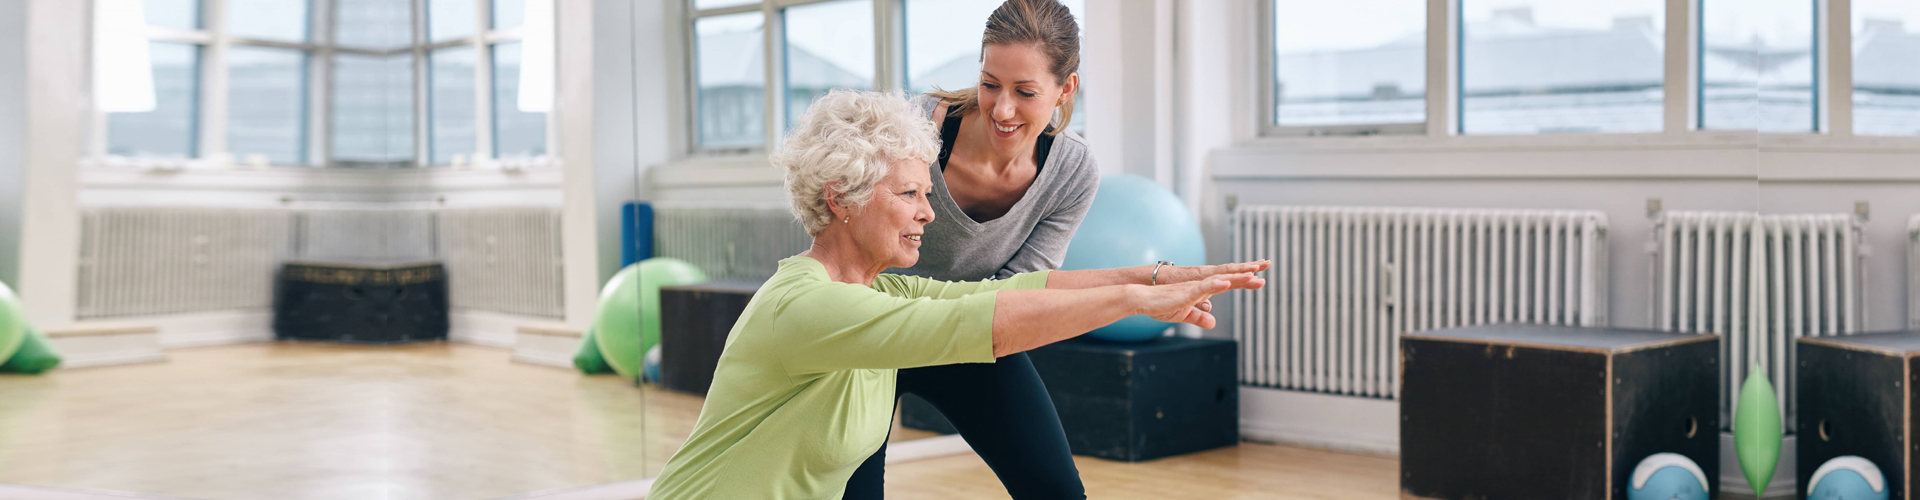 a senior woman exercising with her personal trainer